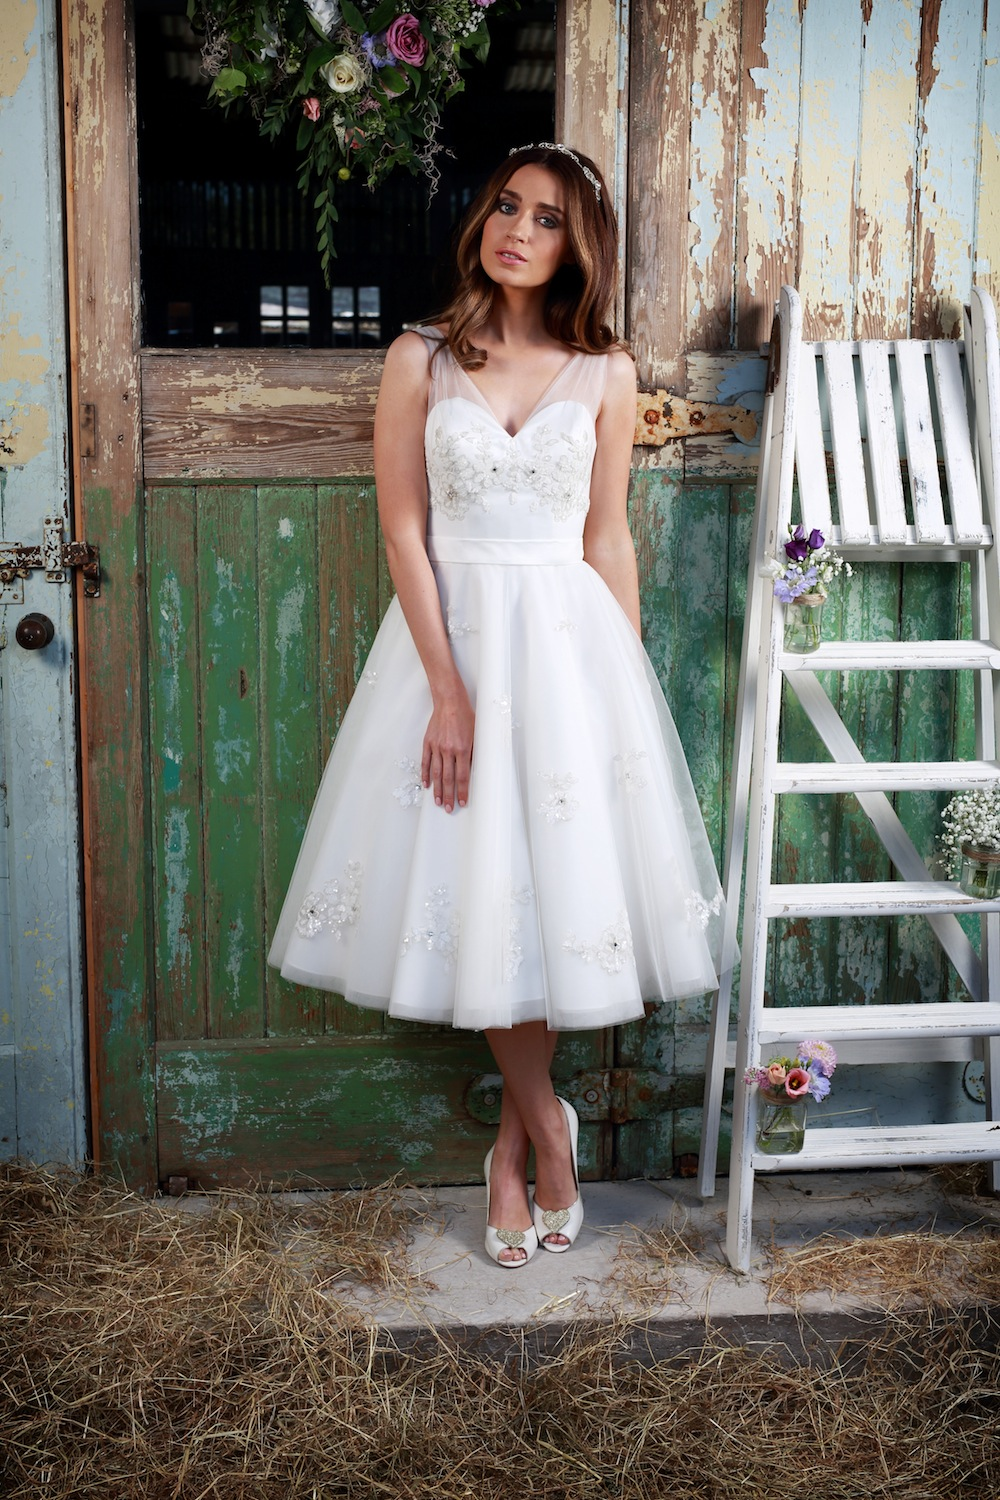 Amanda Wyatt 2016 Wedding Gowns : Cherub - flirty gown with sheer v-neck straps decorated with bead floral detailing.  The shoes on our photo-shoot were Charlotte Mills brand, so perfect to match the gown